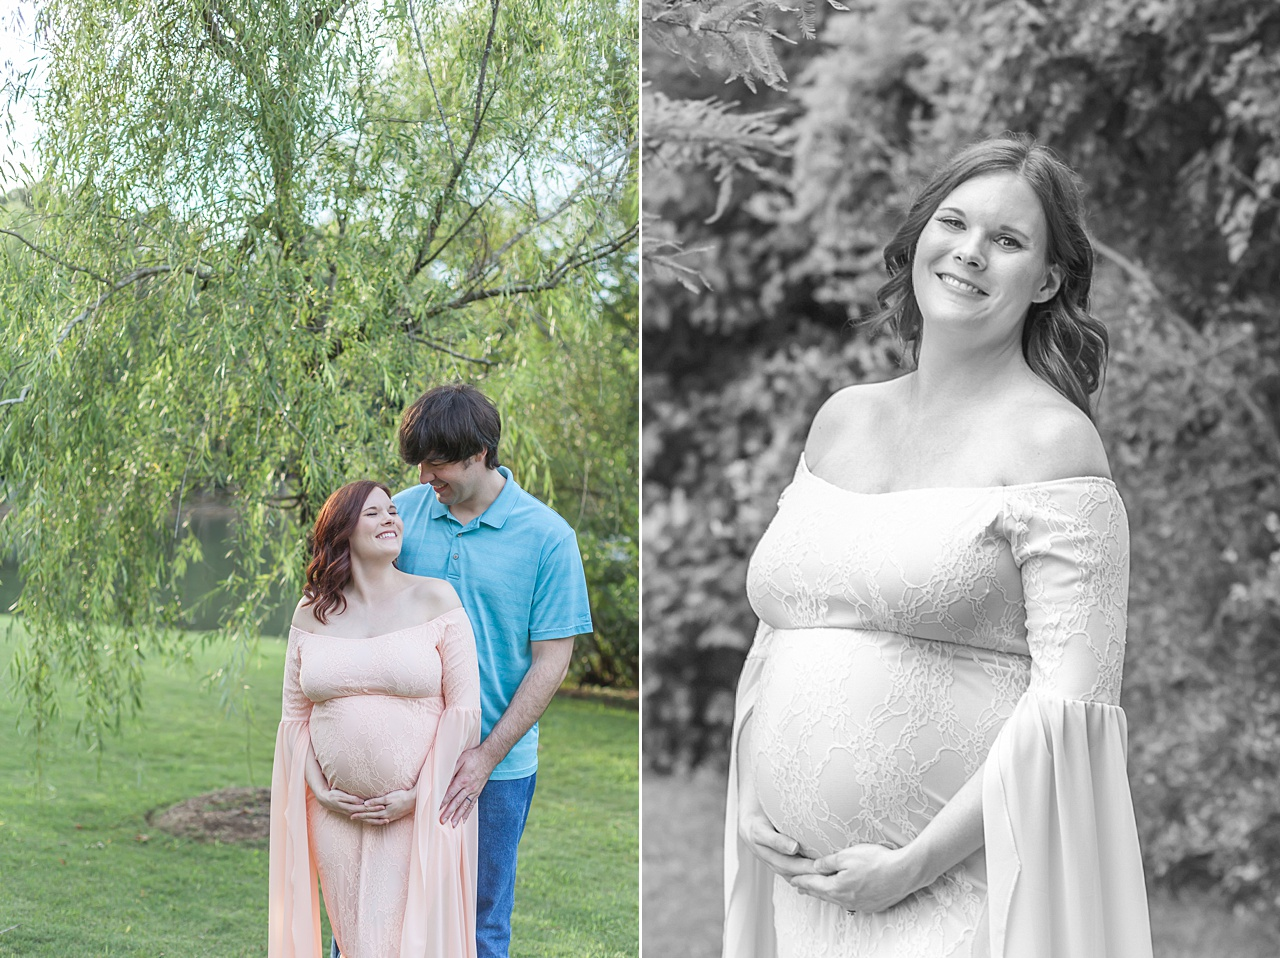 pregnancy photo shoot in the woodlands texas featuring light pink gown by kristal bean photography